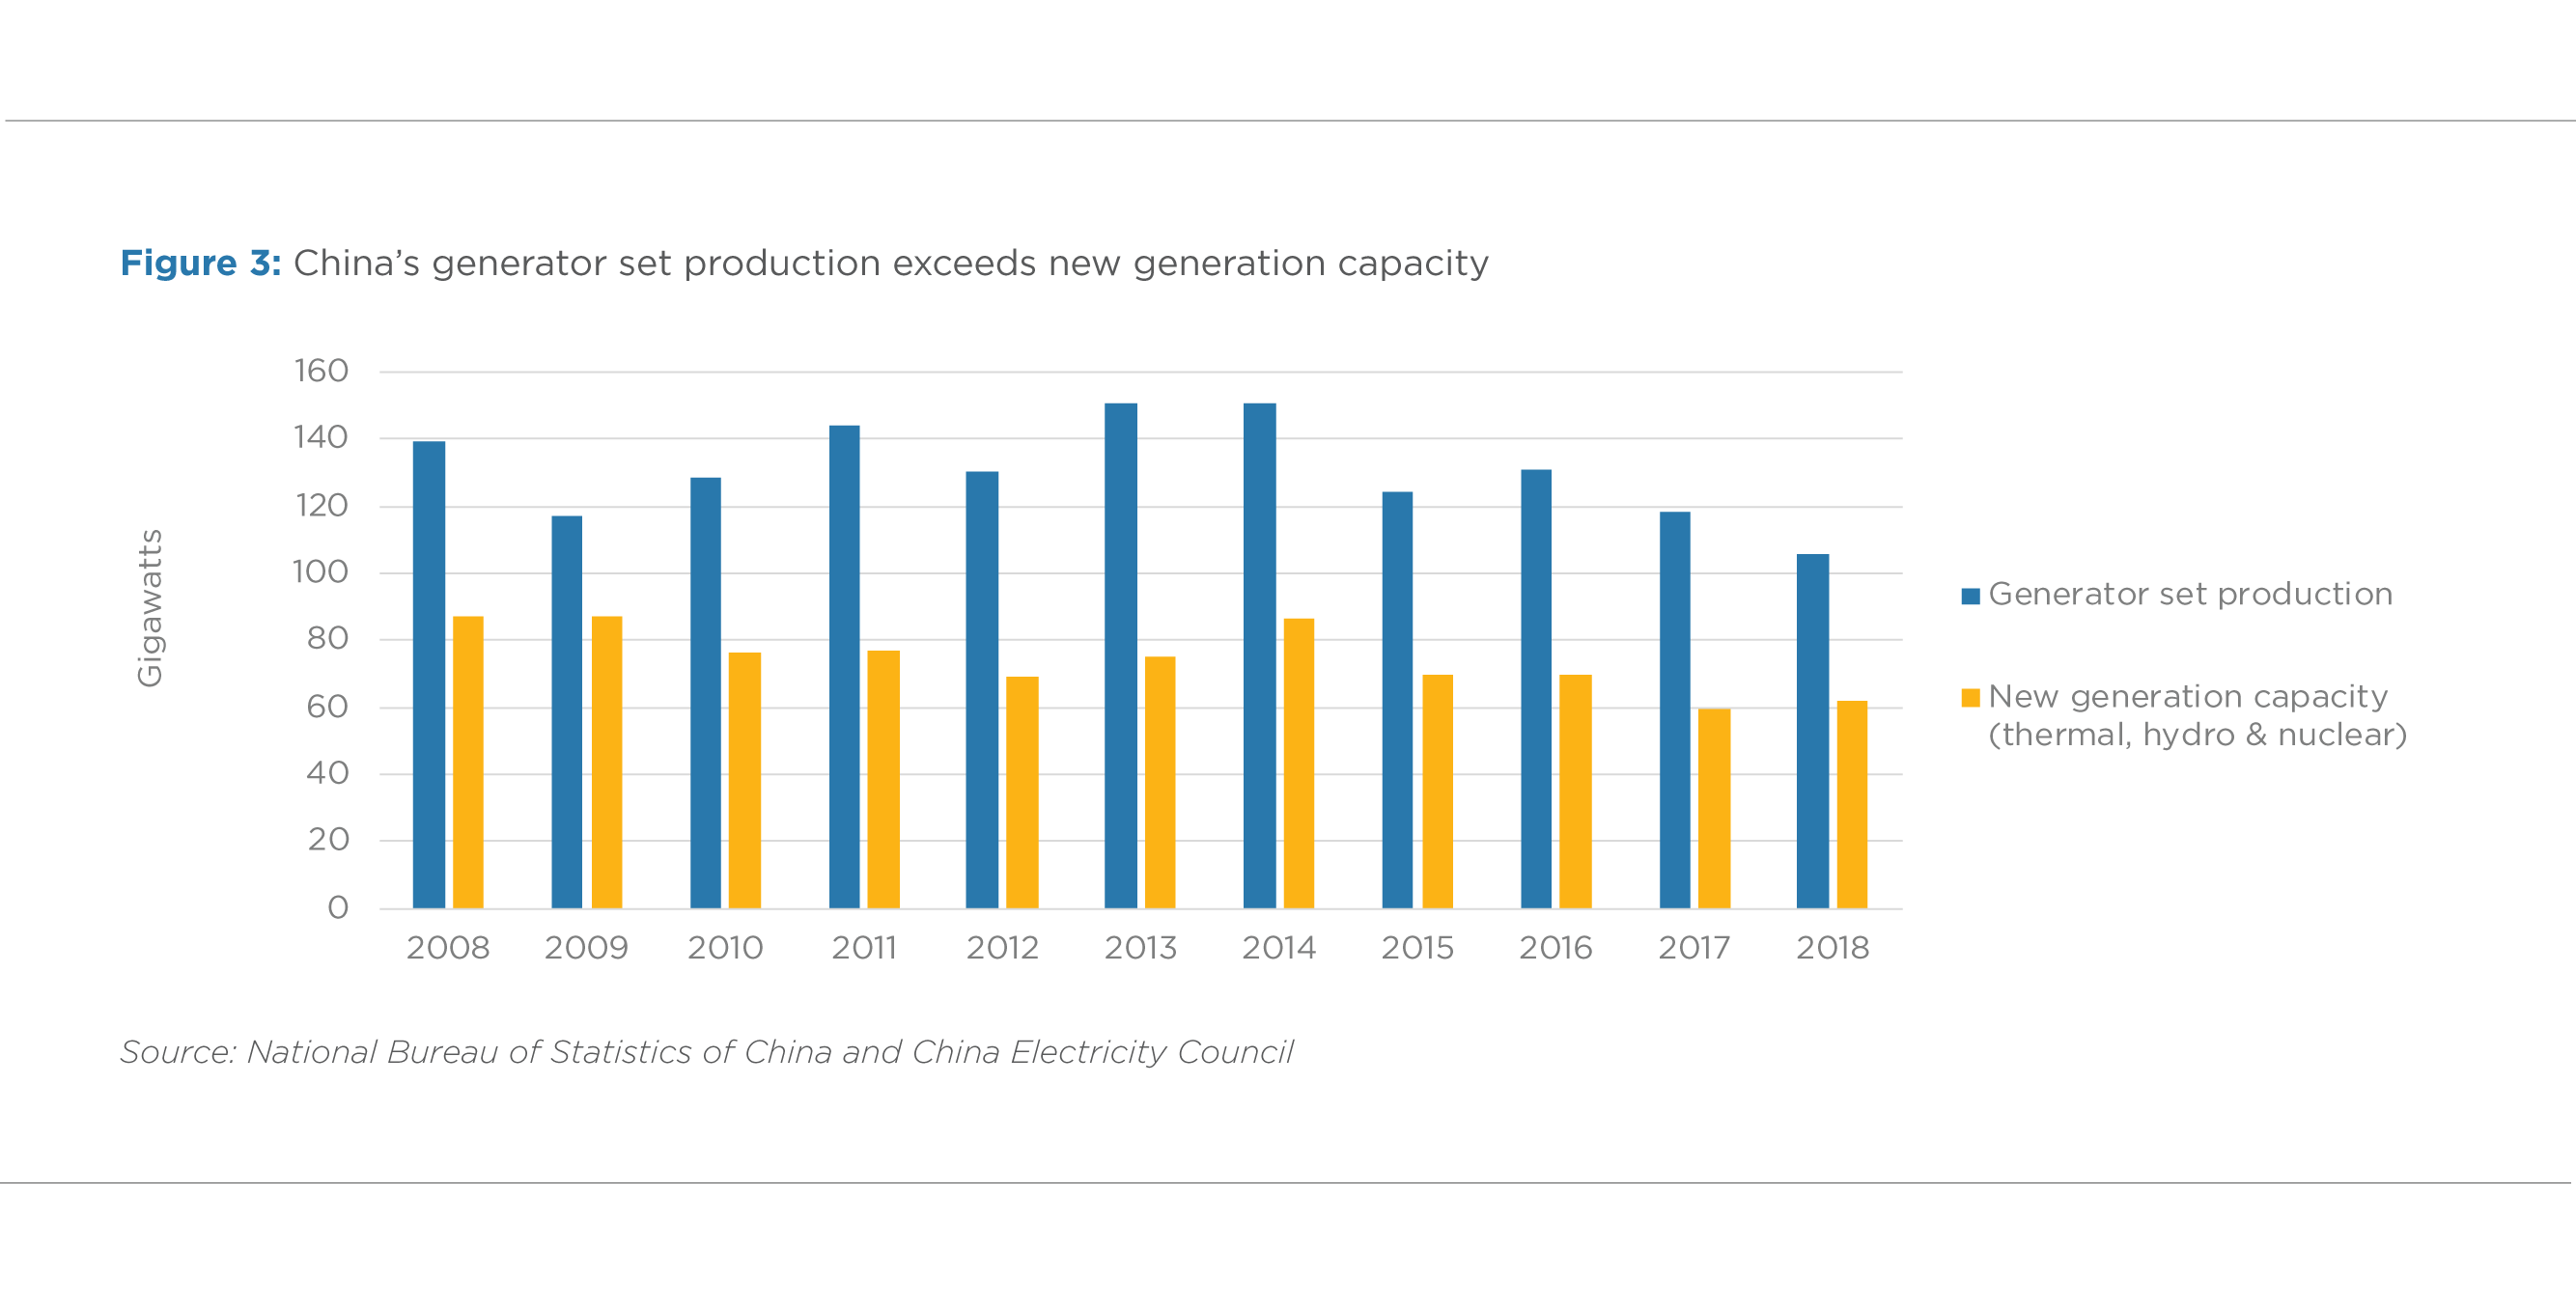 FIGURE 3. CHINA'S GENERATOR SET PRODUCTION EXCEEDS NEW GENERATION CAPACITY